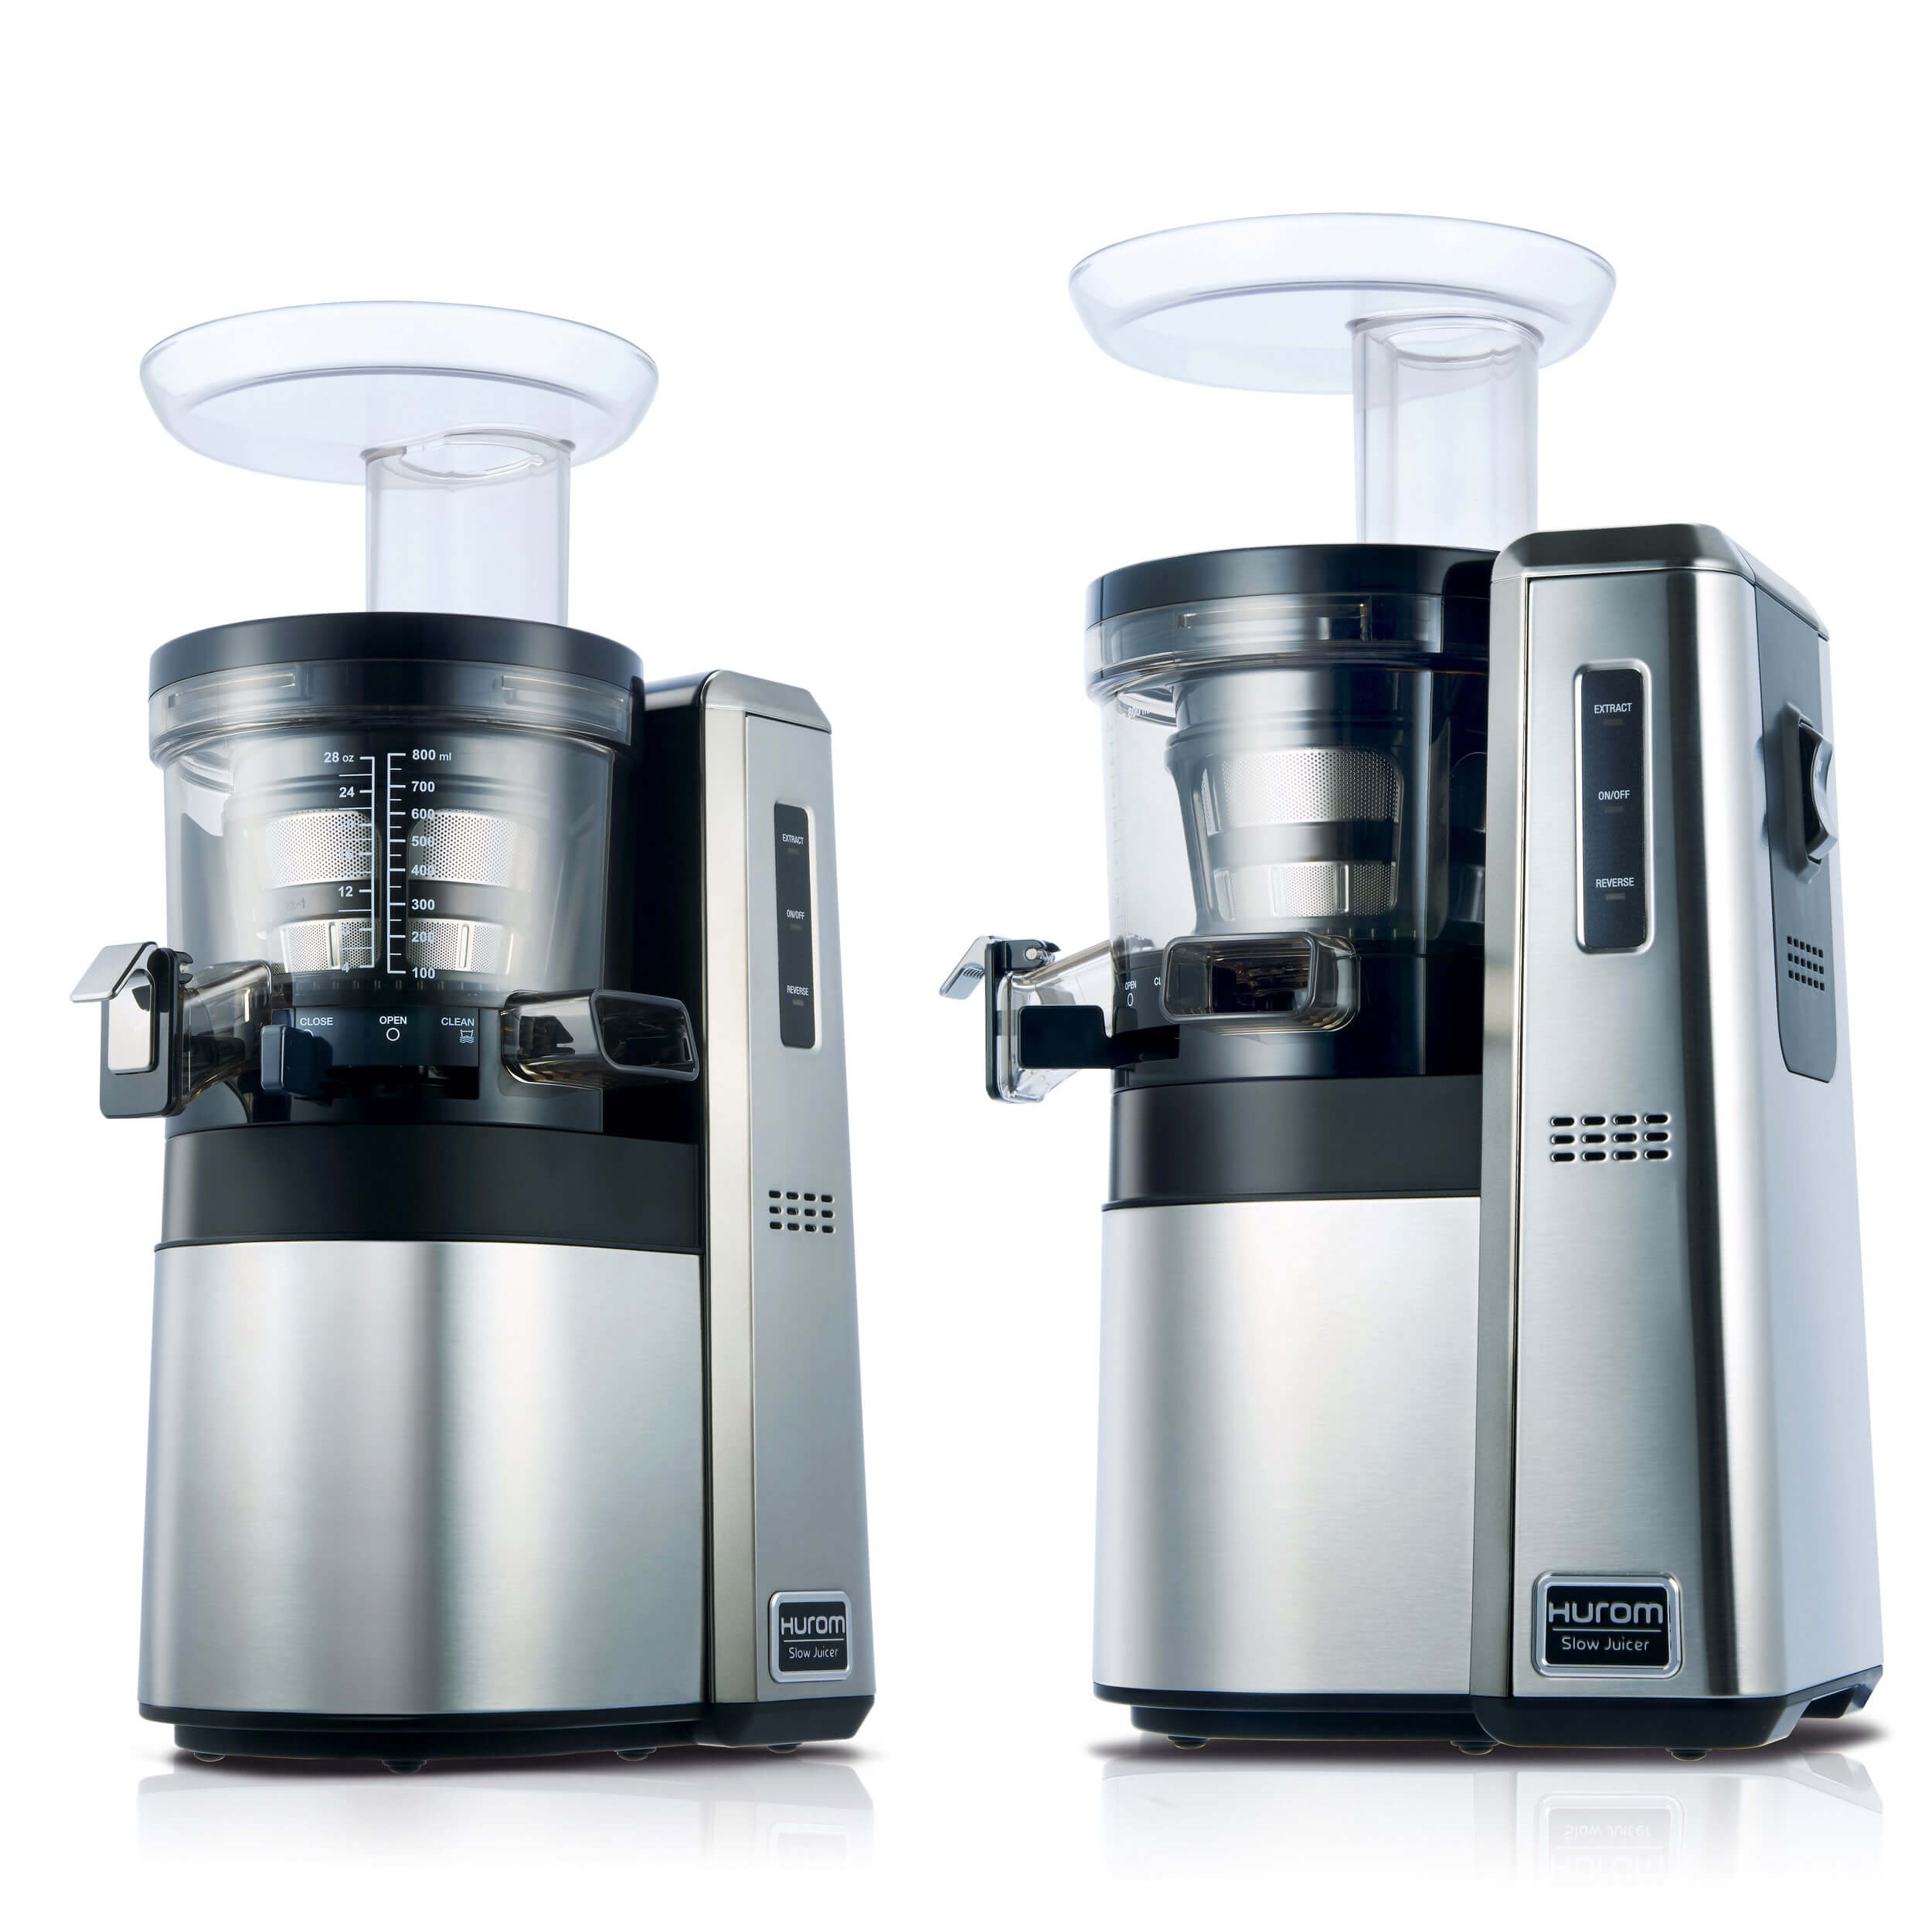 Hurom Slow Juicer Benefits : Hurom H22 / HW-SBF15 Commercial, Oscar & Hurom Juicers